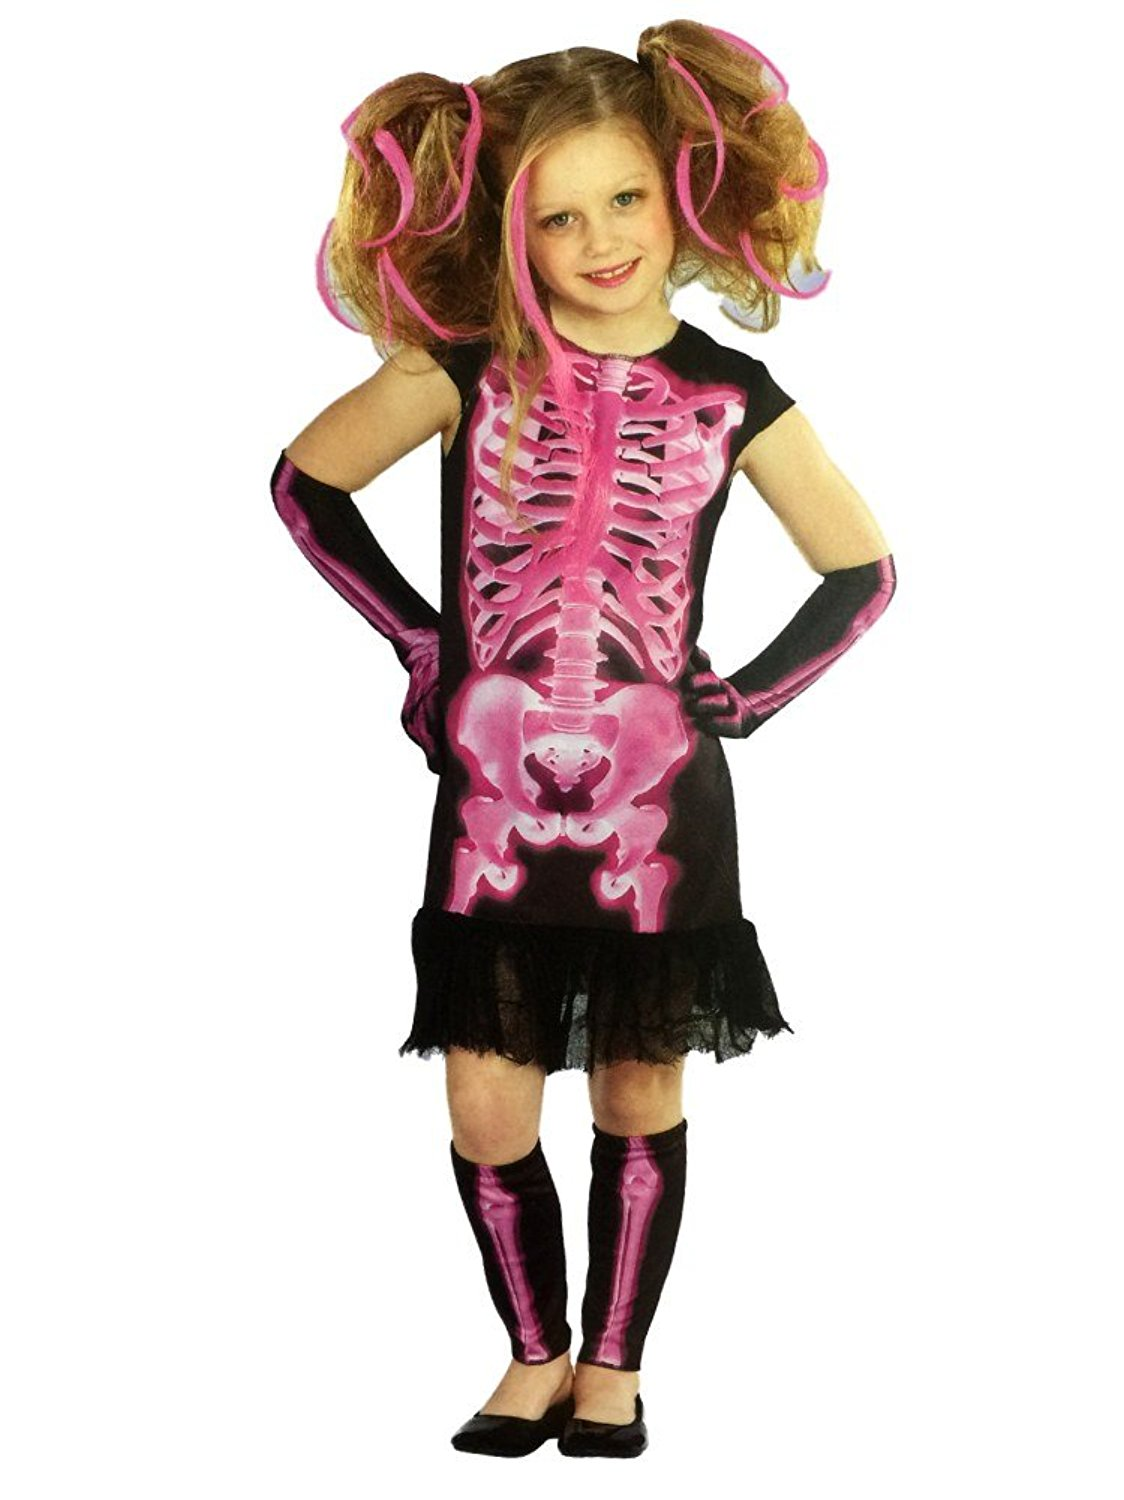 cheap girls halloween outfit, find girls halloween outfit deals on